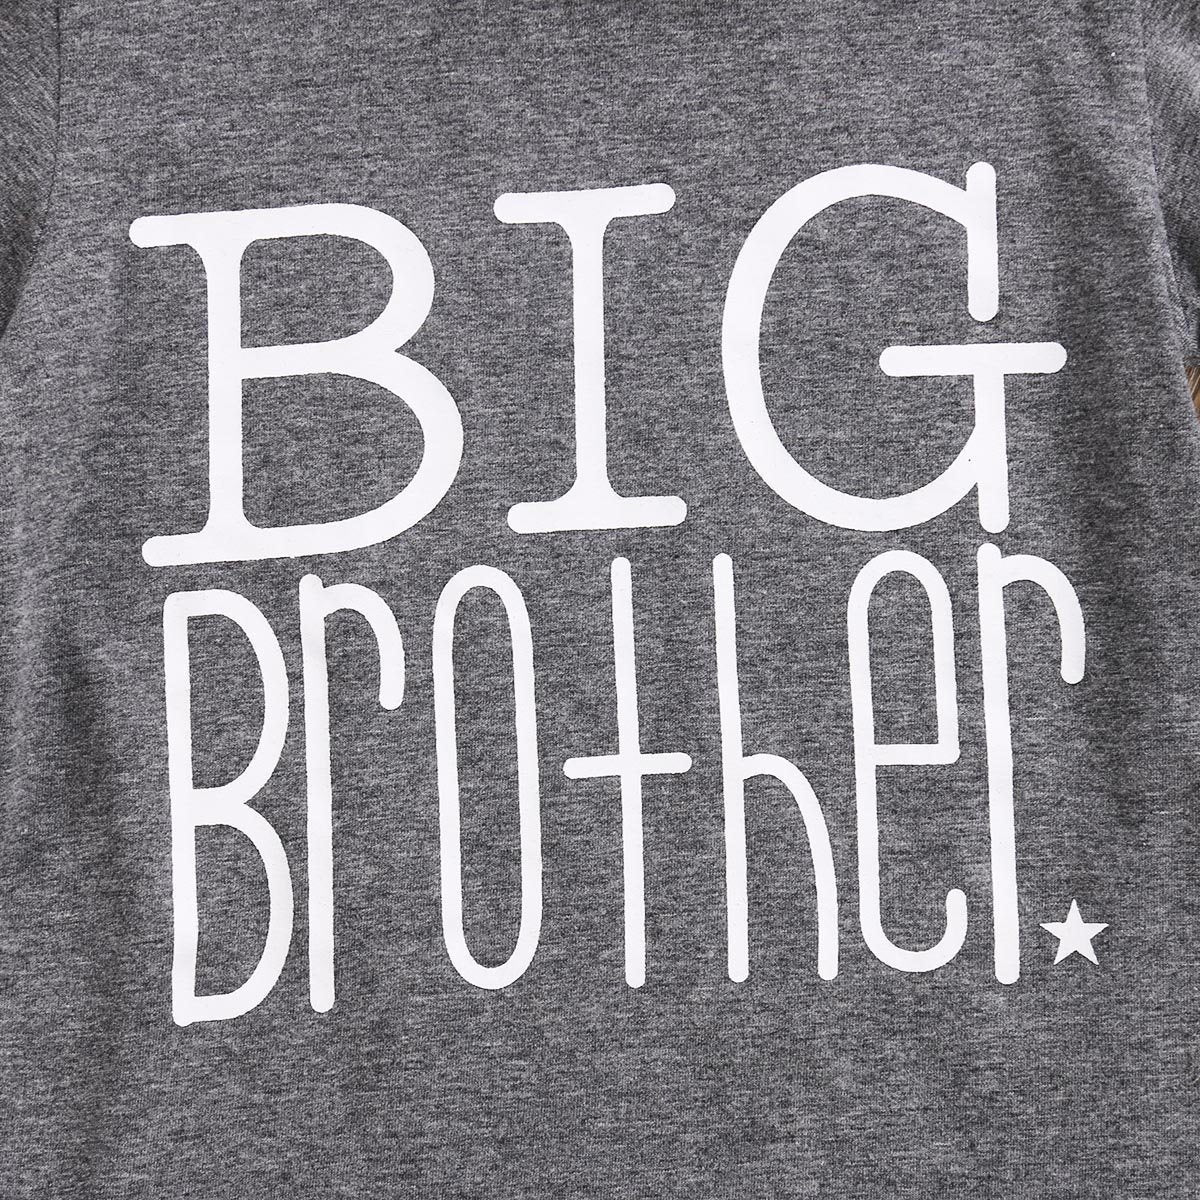 Big Brother Little Sister Matching Shirts - Big Brother T-shirt and Little Sister Onesie Matching Outfits Loom Rack